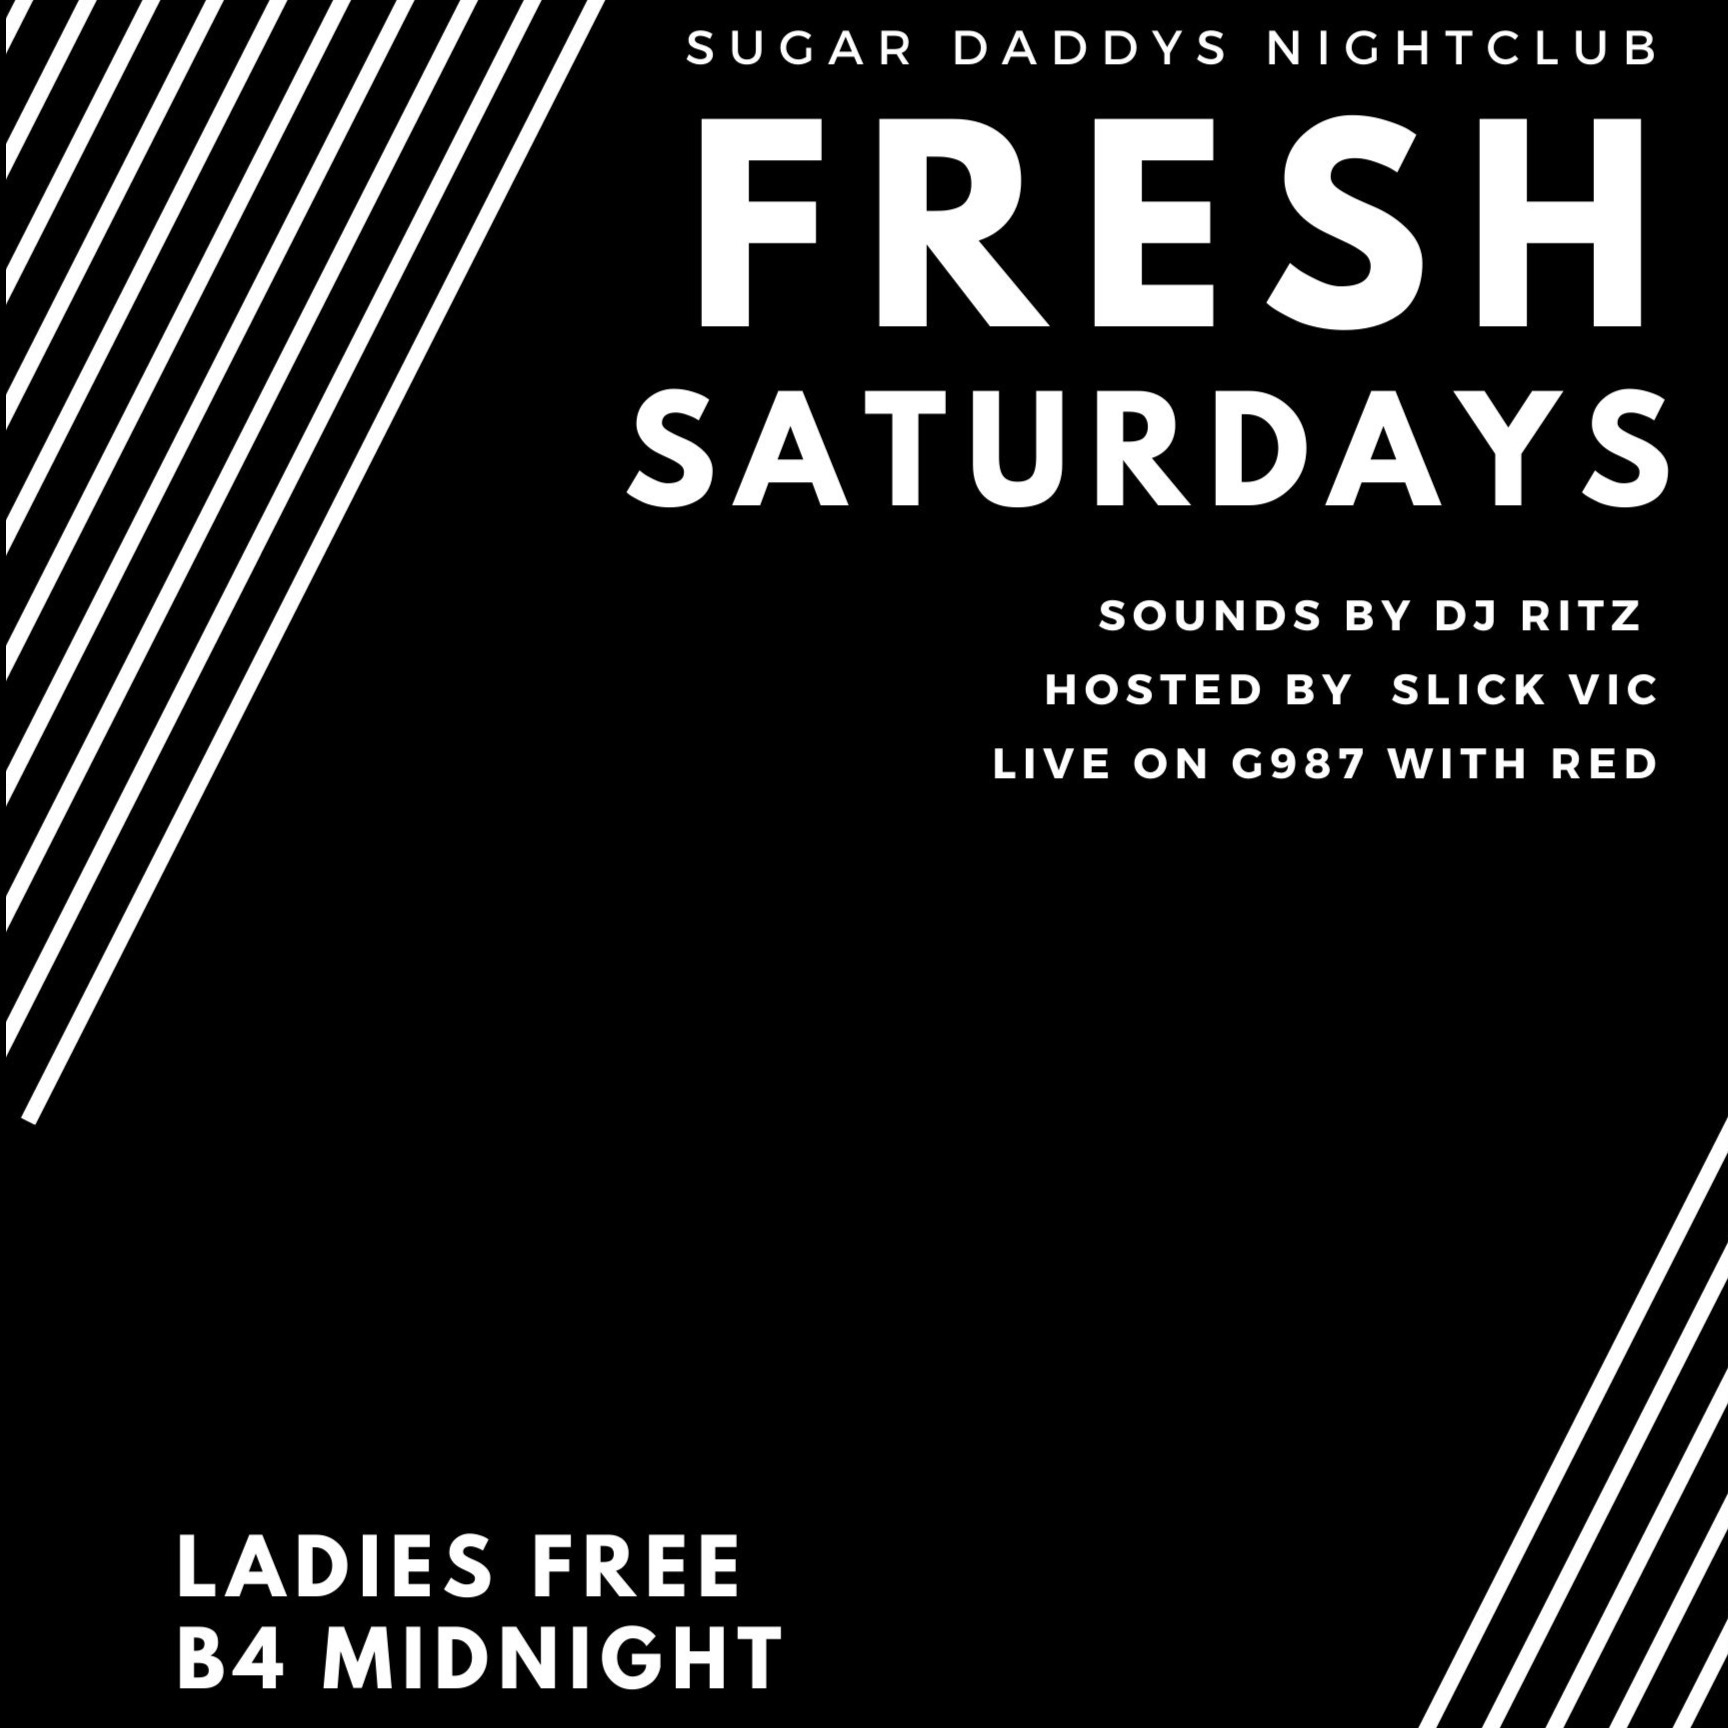 FRESH SATURDAYS LADIES FREE B4 MIDNIGHT LIVE G987 W/ DJ RITZ, RED, SLICK VIC